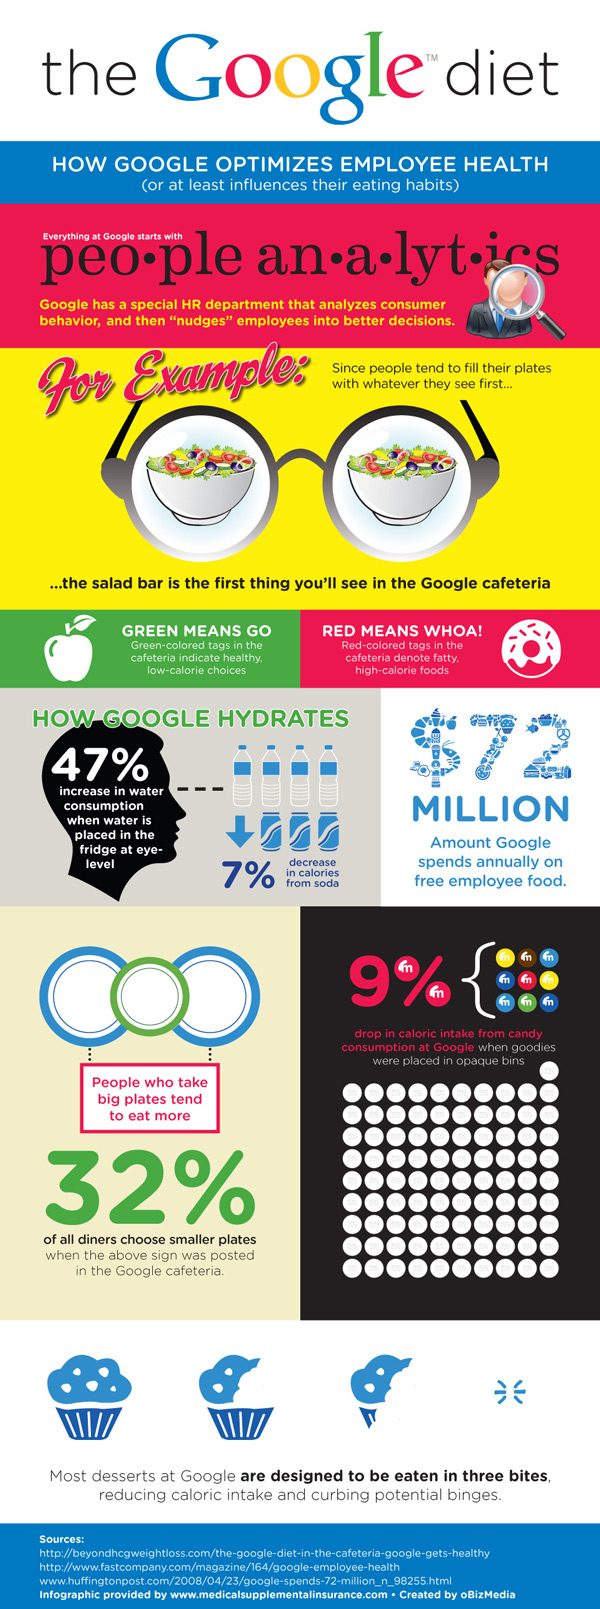 Google Diet Infographic